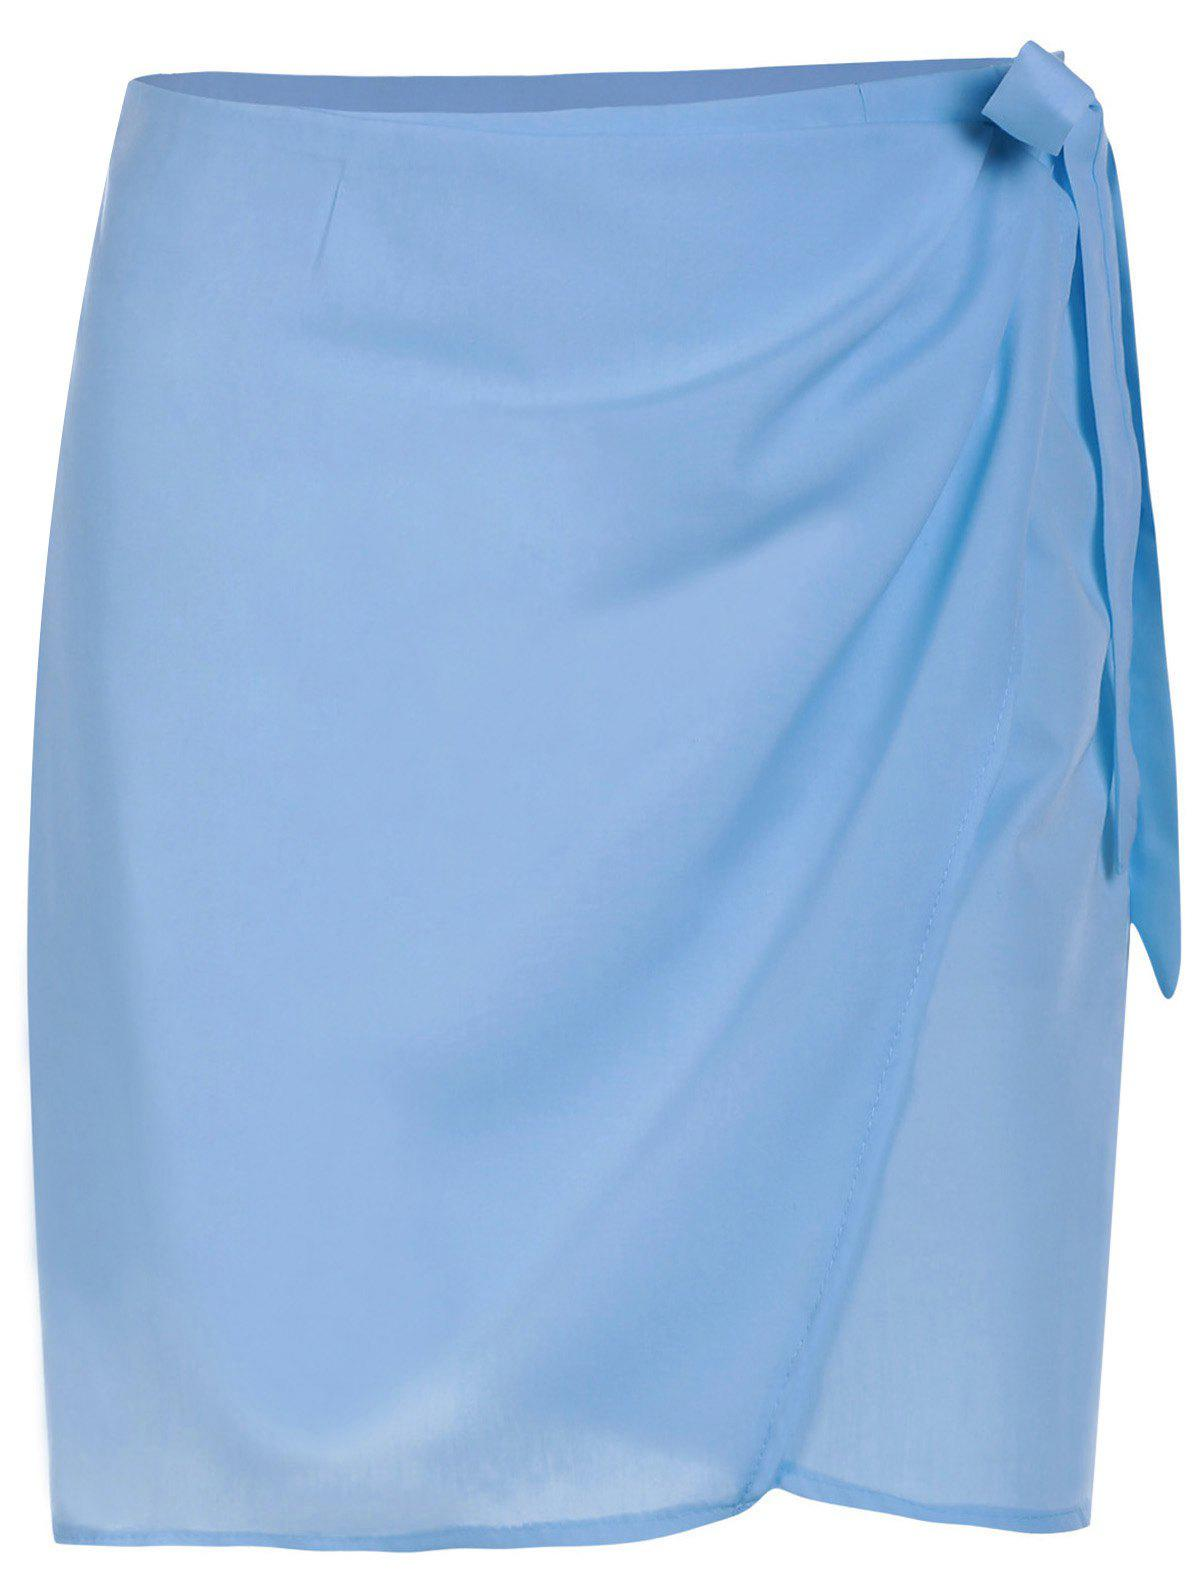 Trendy Light Blue Lace-Up Mini Skirt For Women - LIGHT BLUE S